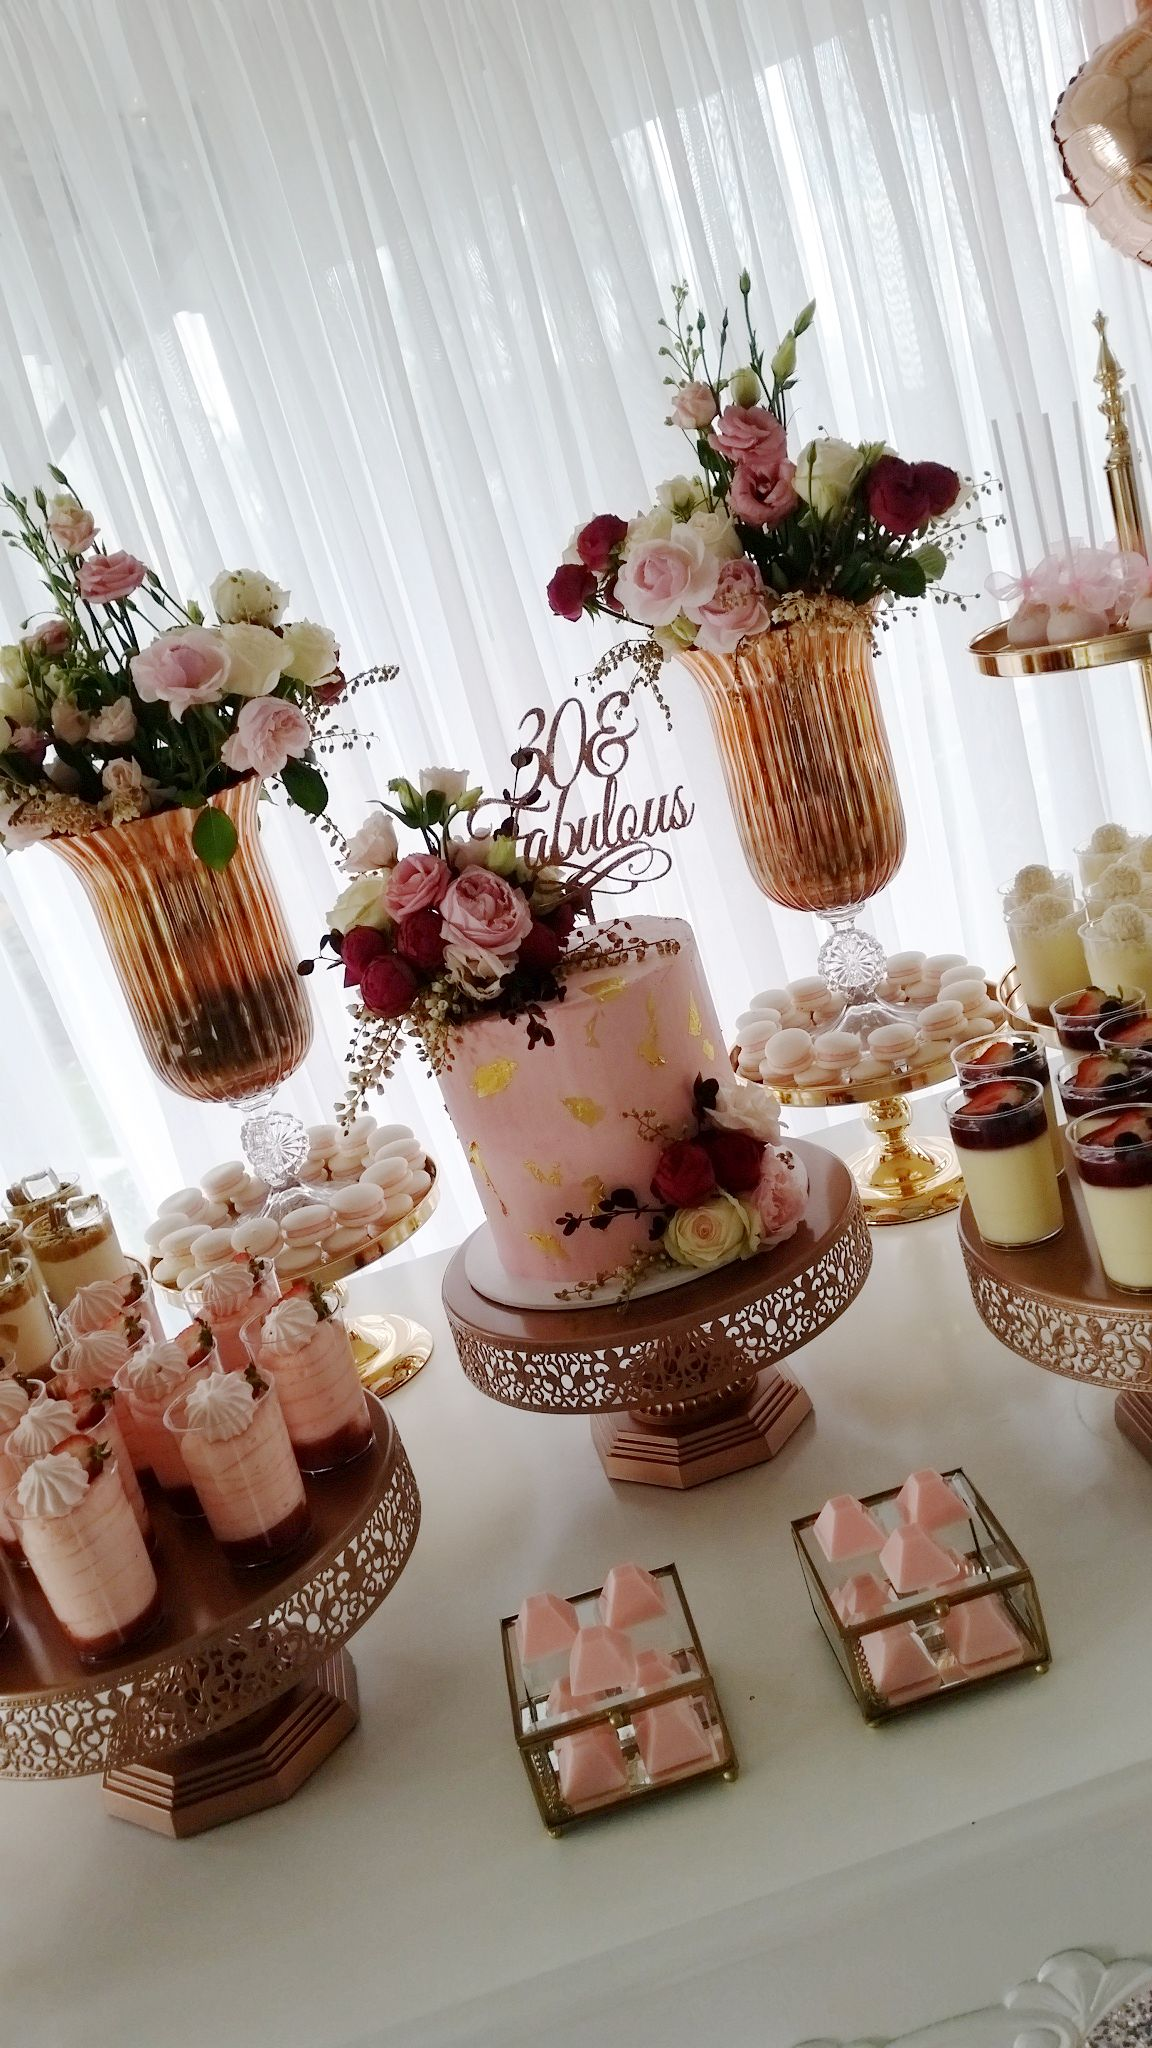 Fabulous Pink And Gold 30th Birthday Party Dessert Table By Creme Co